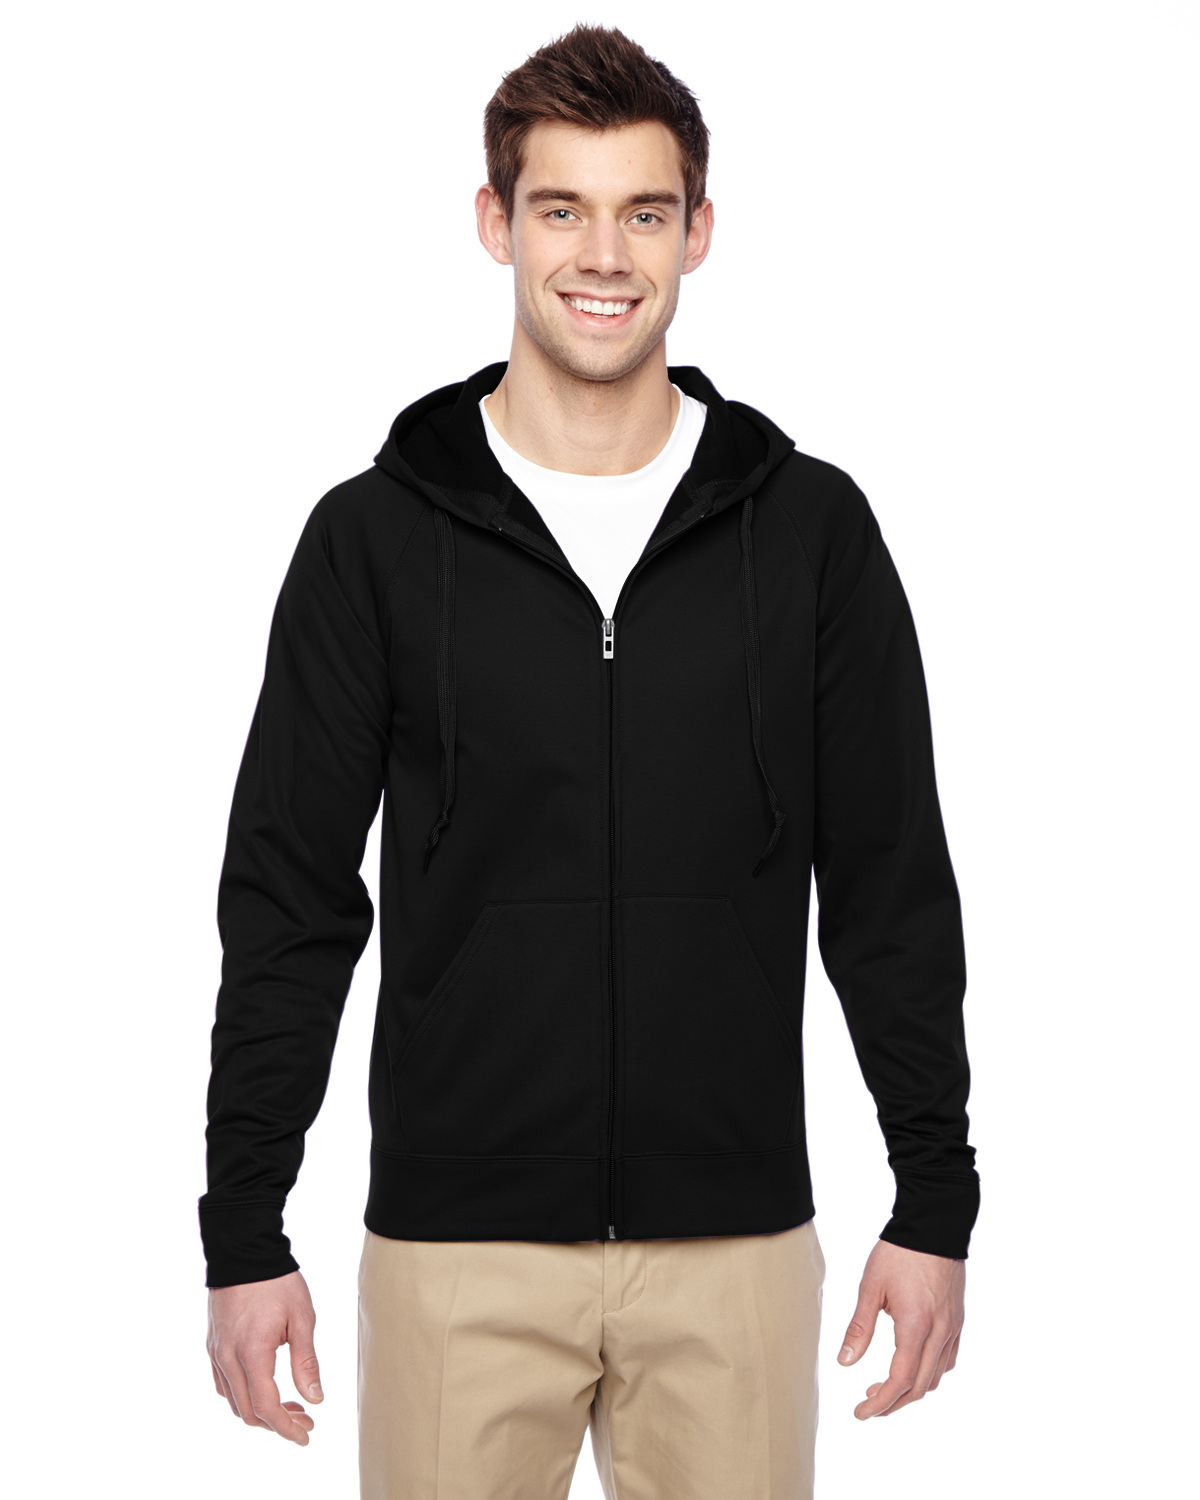 Adult 6 oz. DRI-POWER® SPORT Full-Zip Hooded Sweatshirt